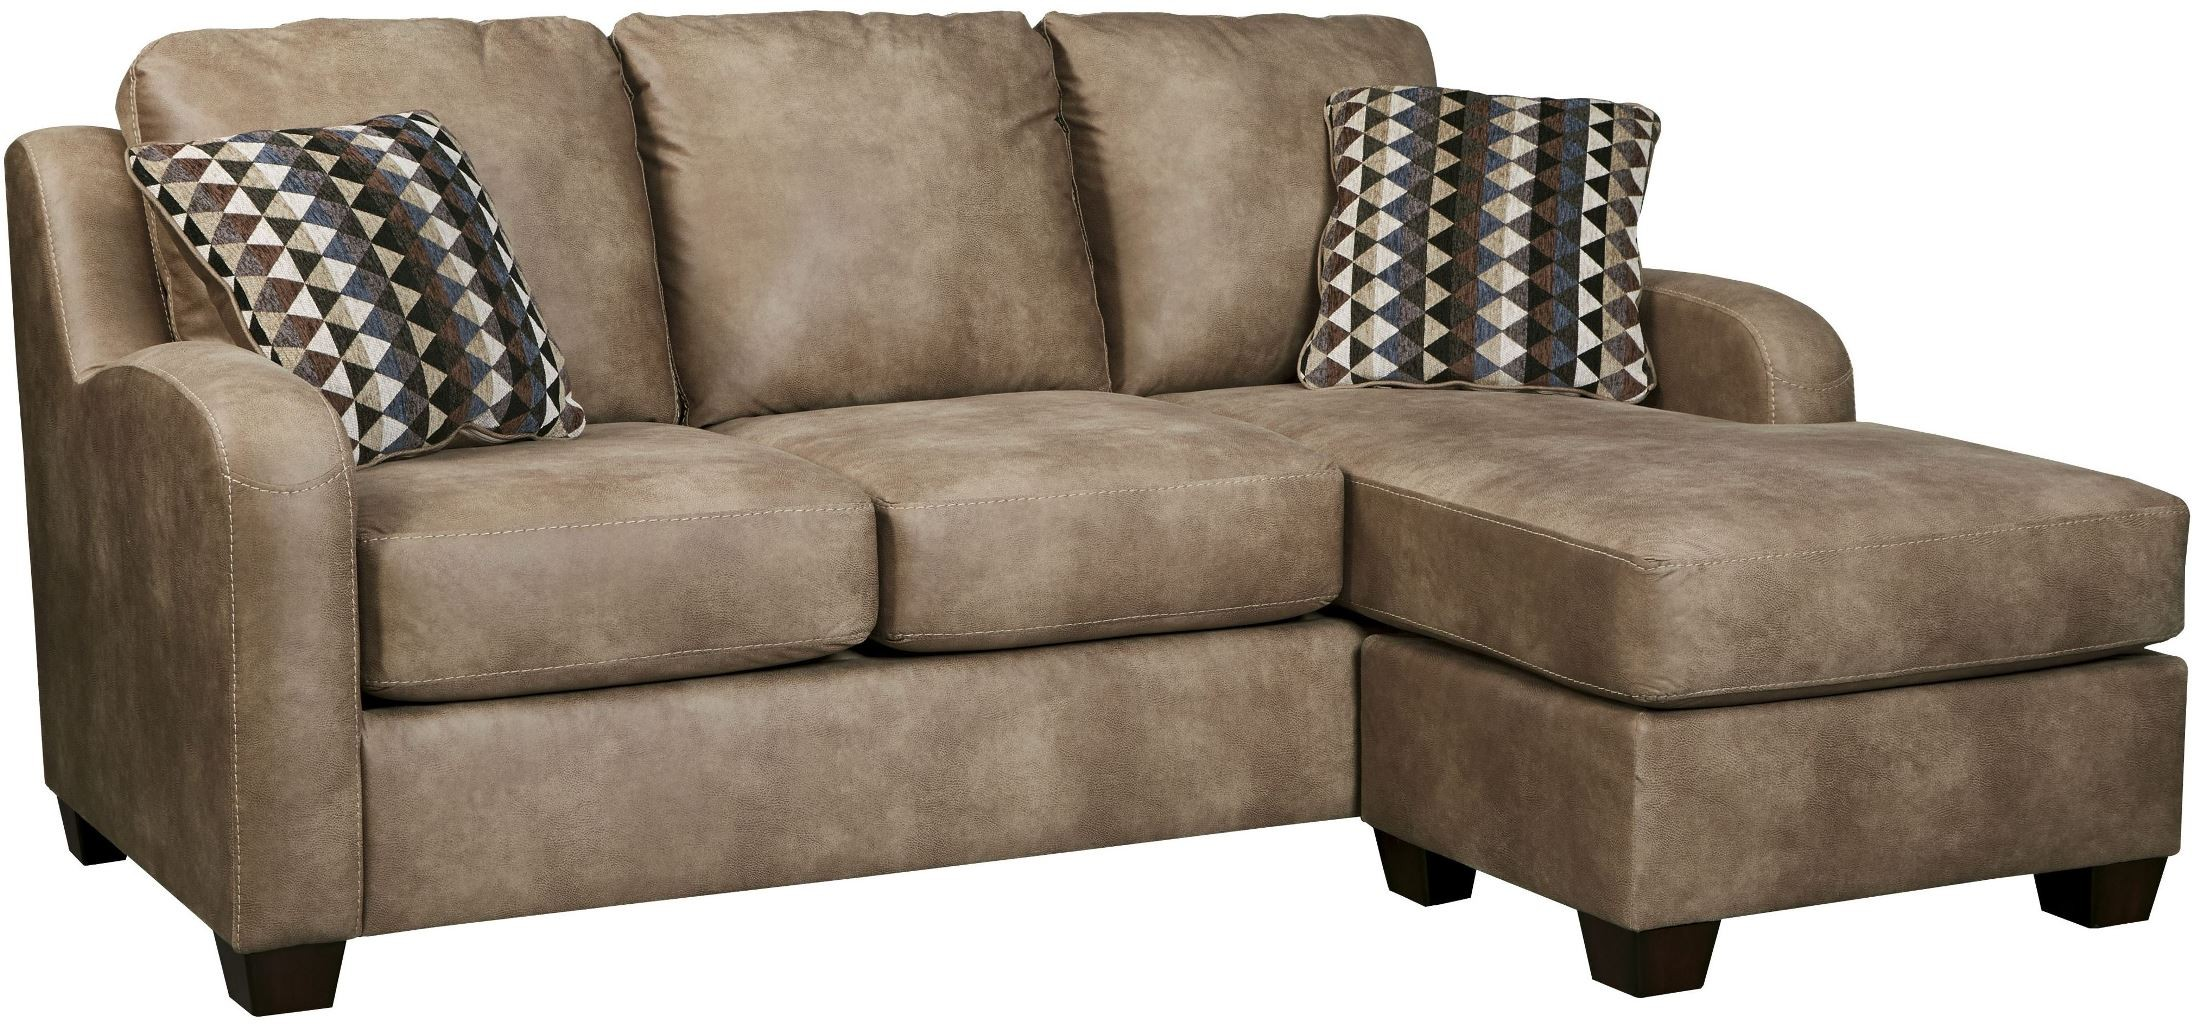 Alturo dune sofa chaise from ashley 6000318 coleman for Ashley furniture chaise lounge couch